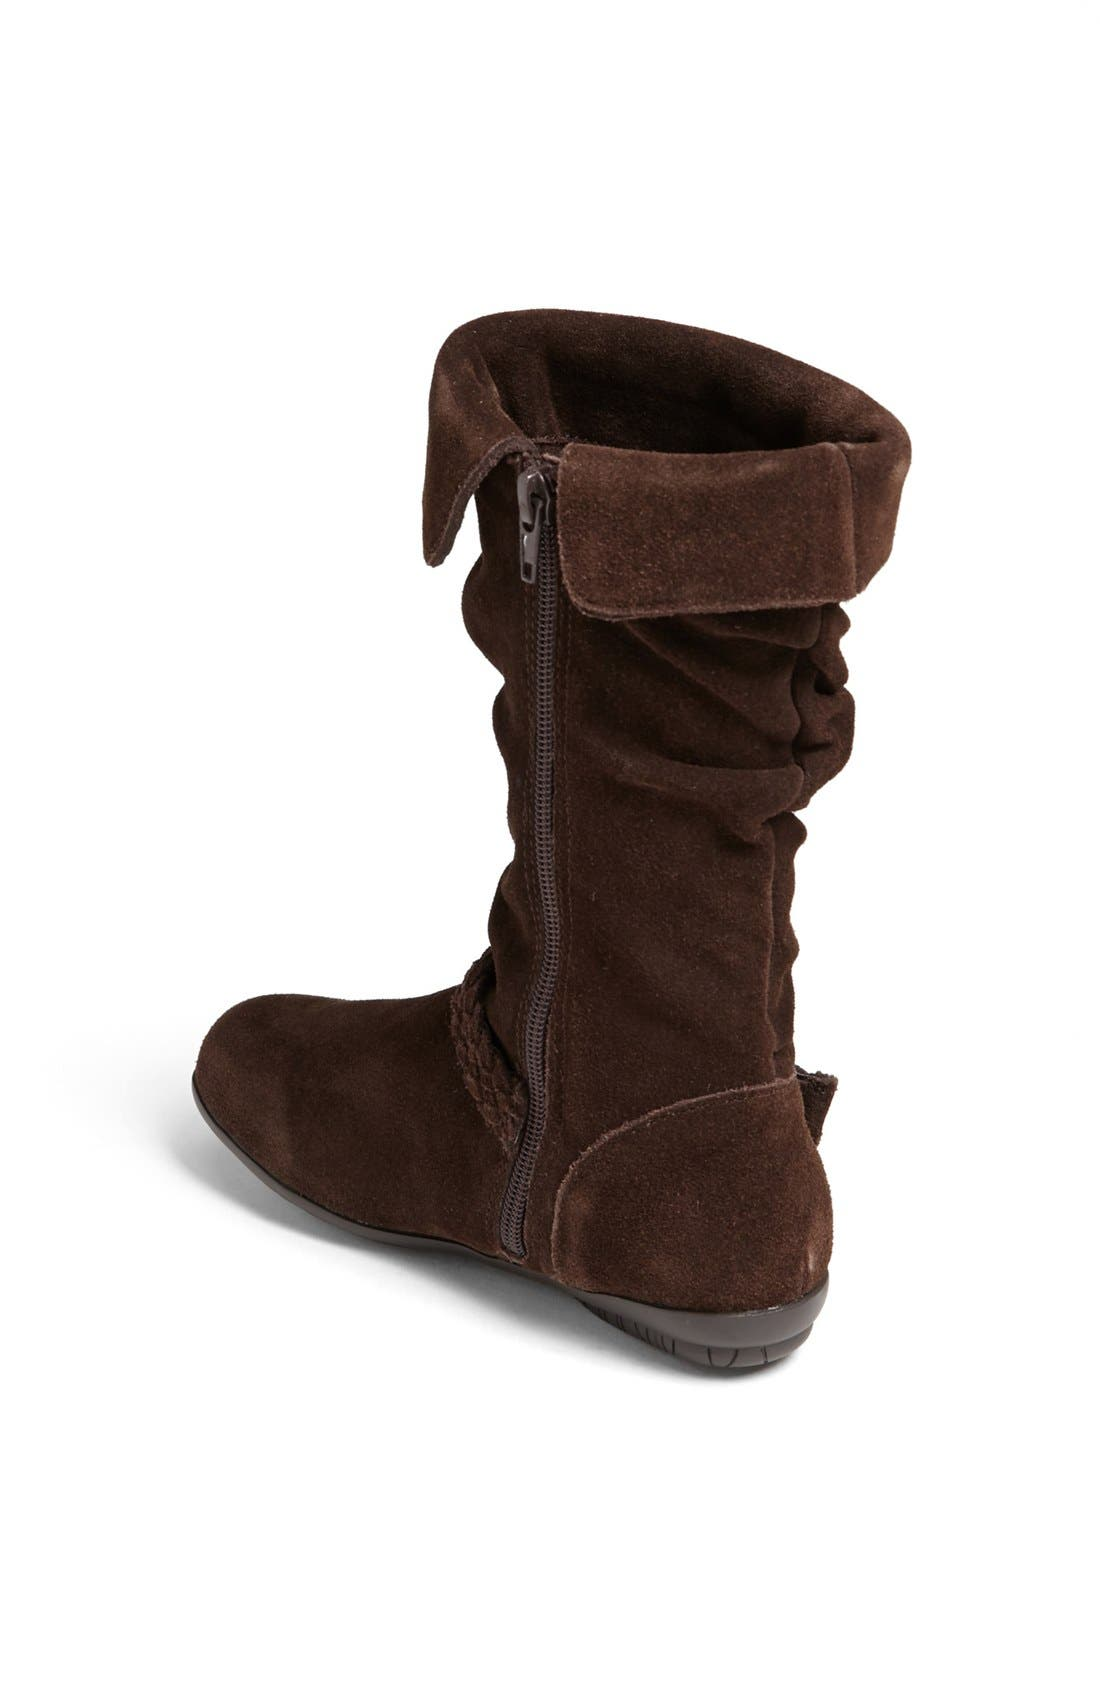 Alternate Image 2  - Stride Rite 'Clifton' Boot (Little Kid & Big Kid)